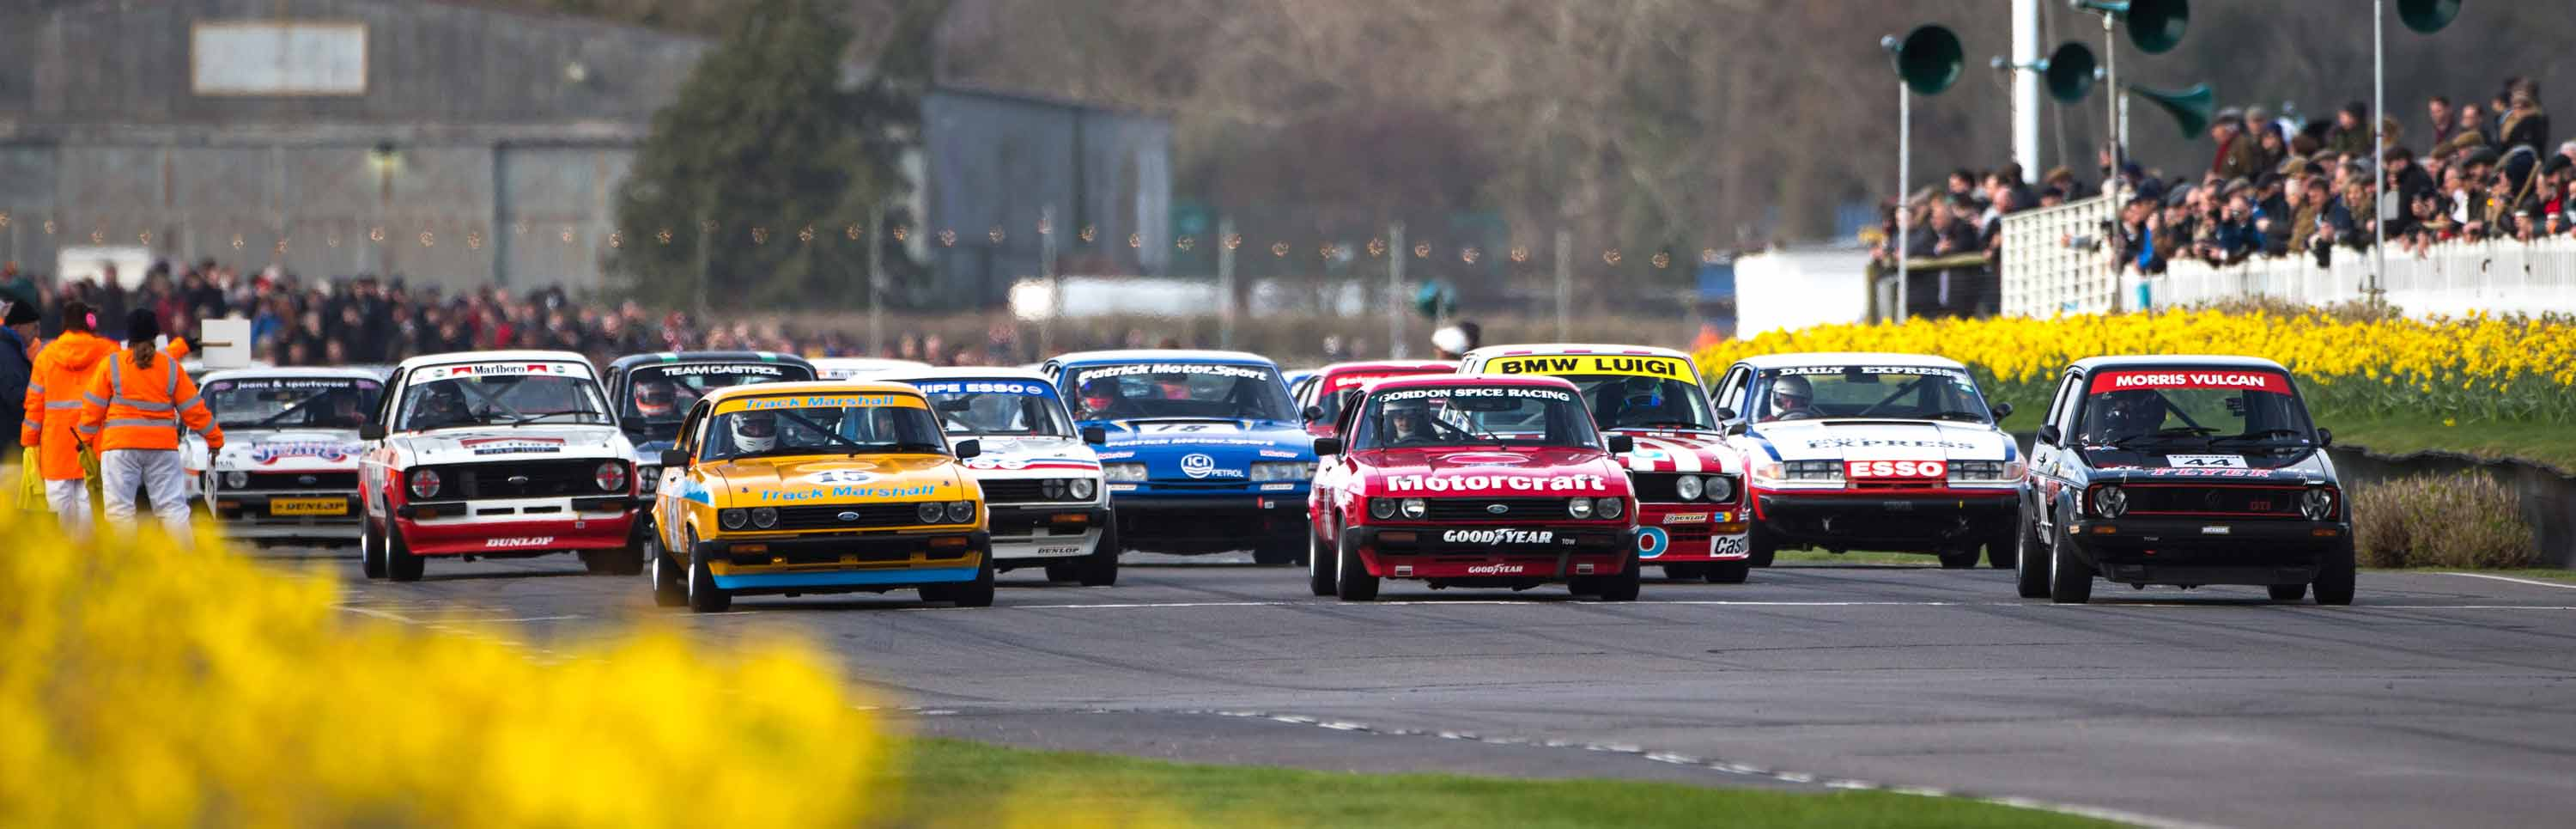 76. Members Meeting Goodwood